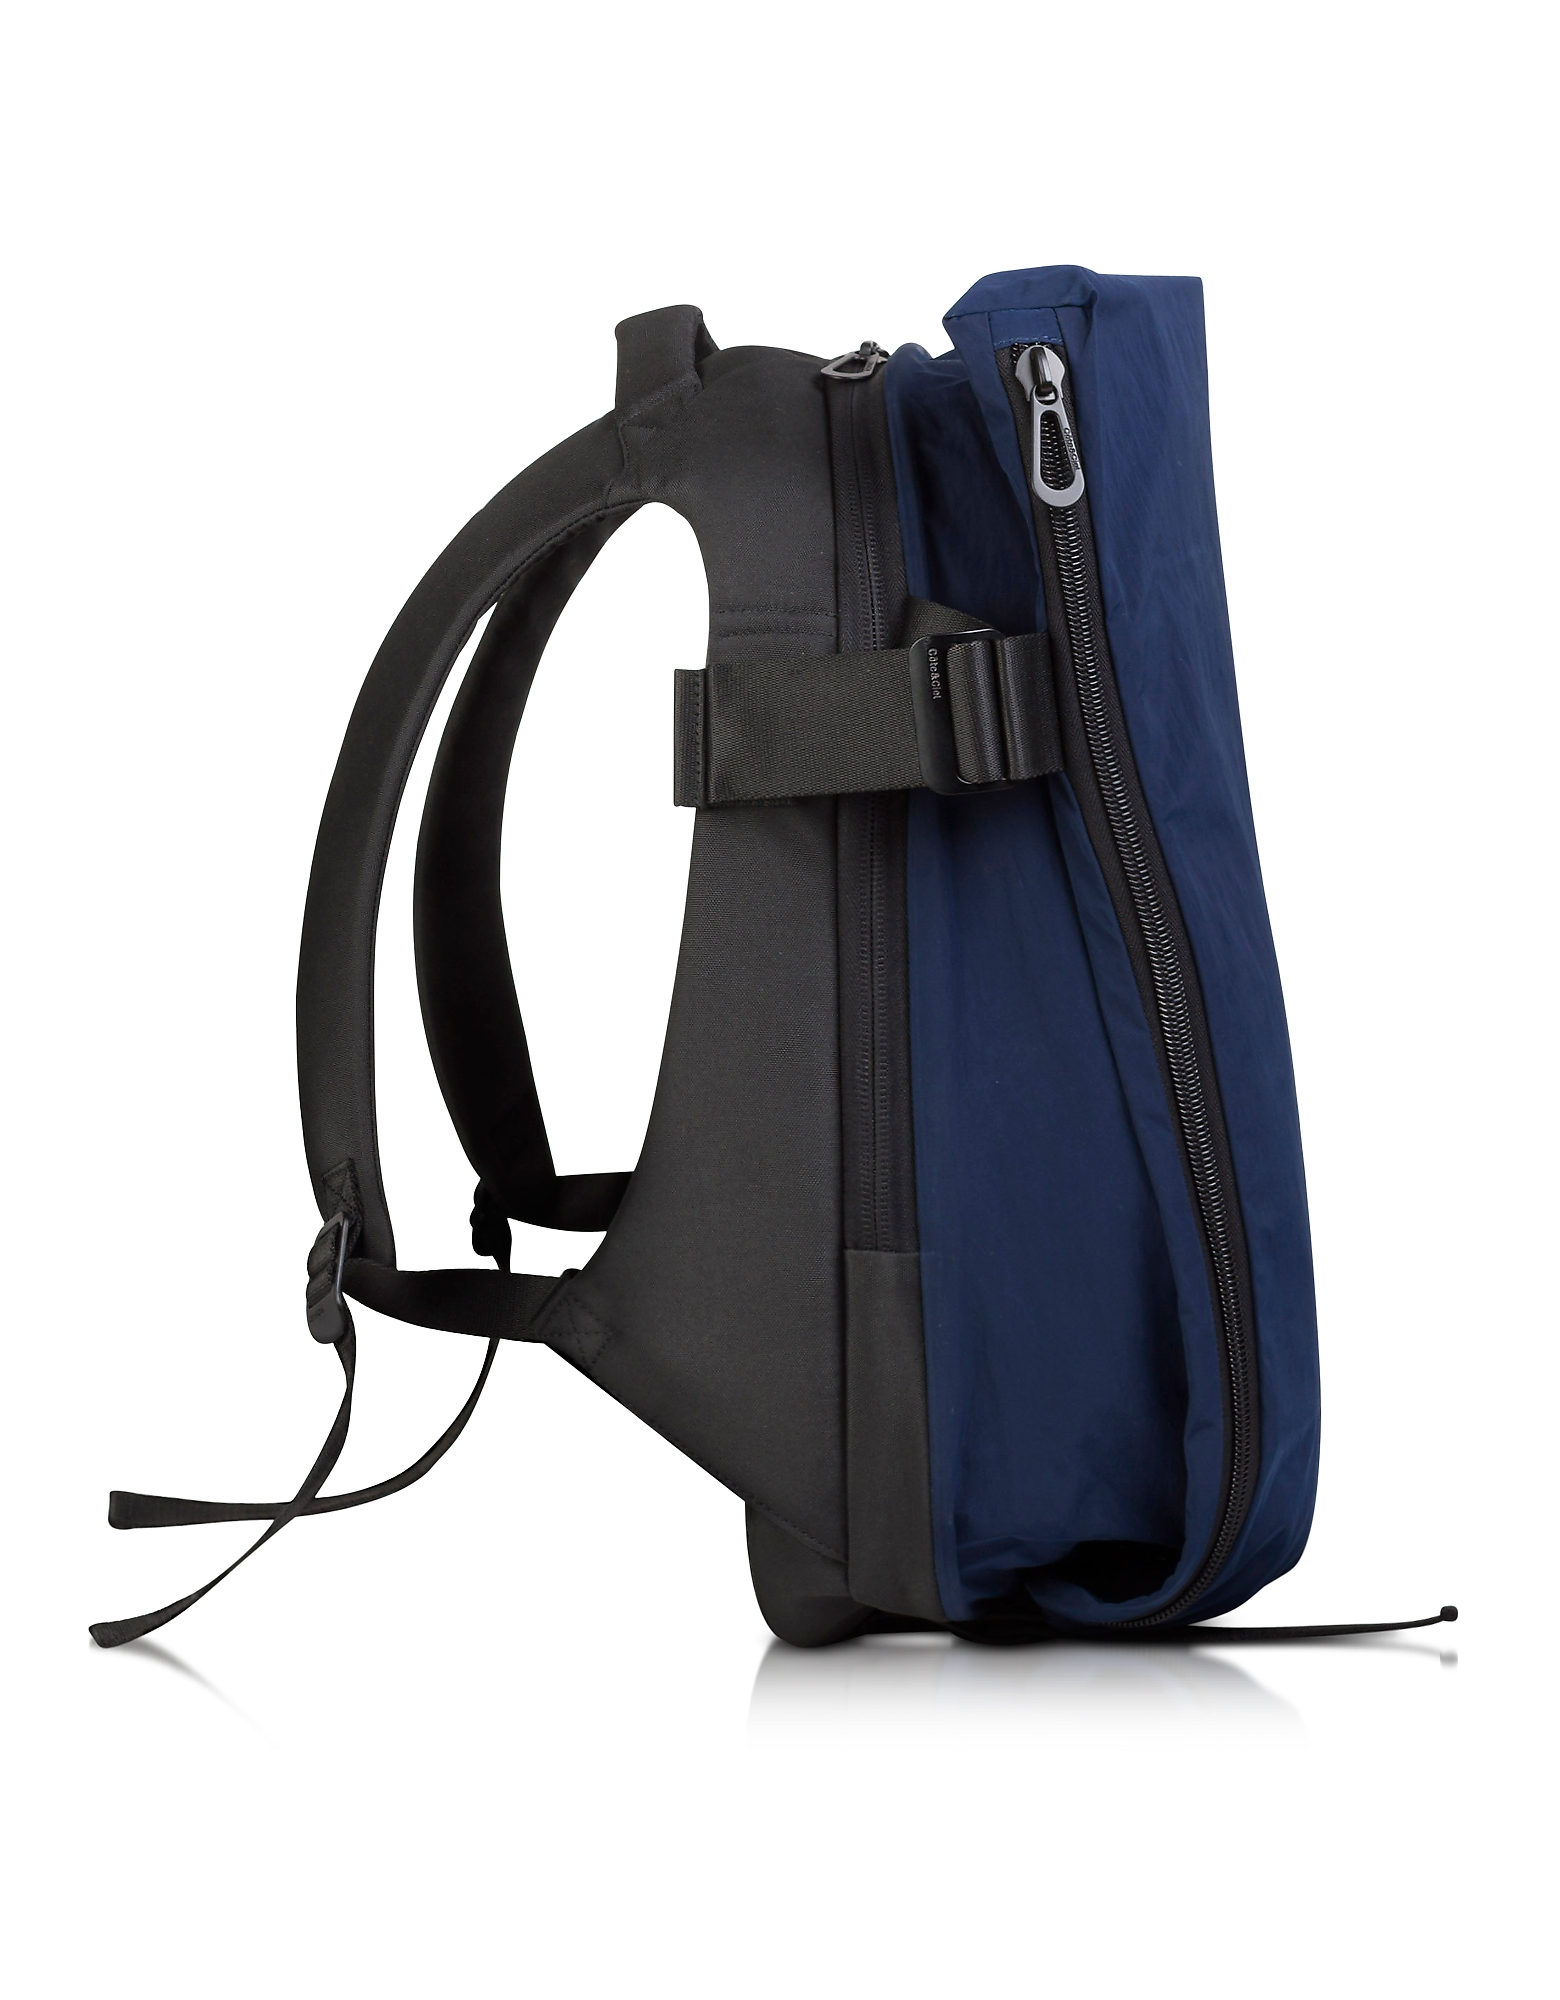 Côte & Ciel Backpacks, Isar Medium Midnight Blue Memory Tech Backpack